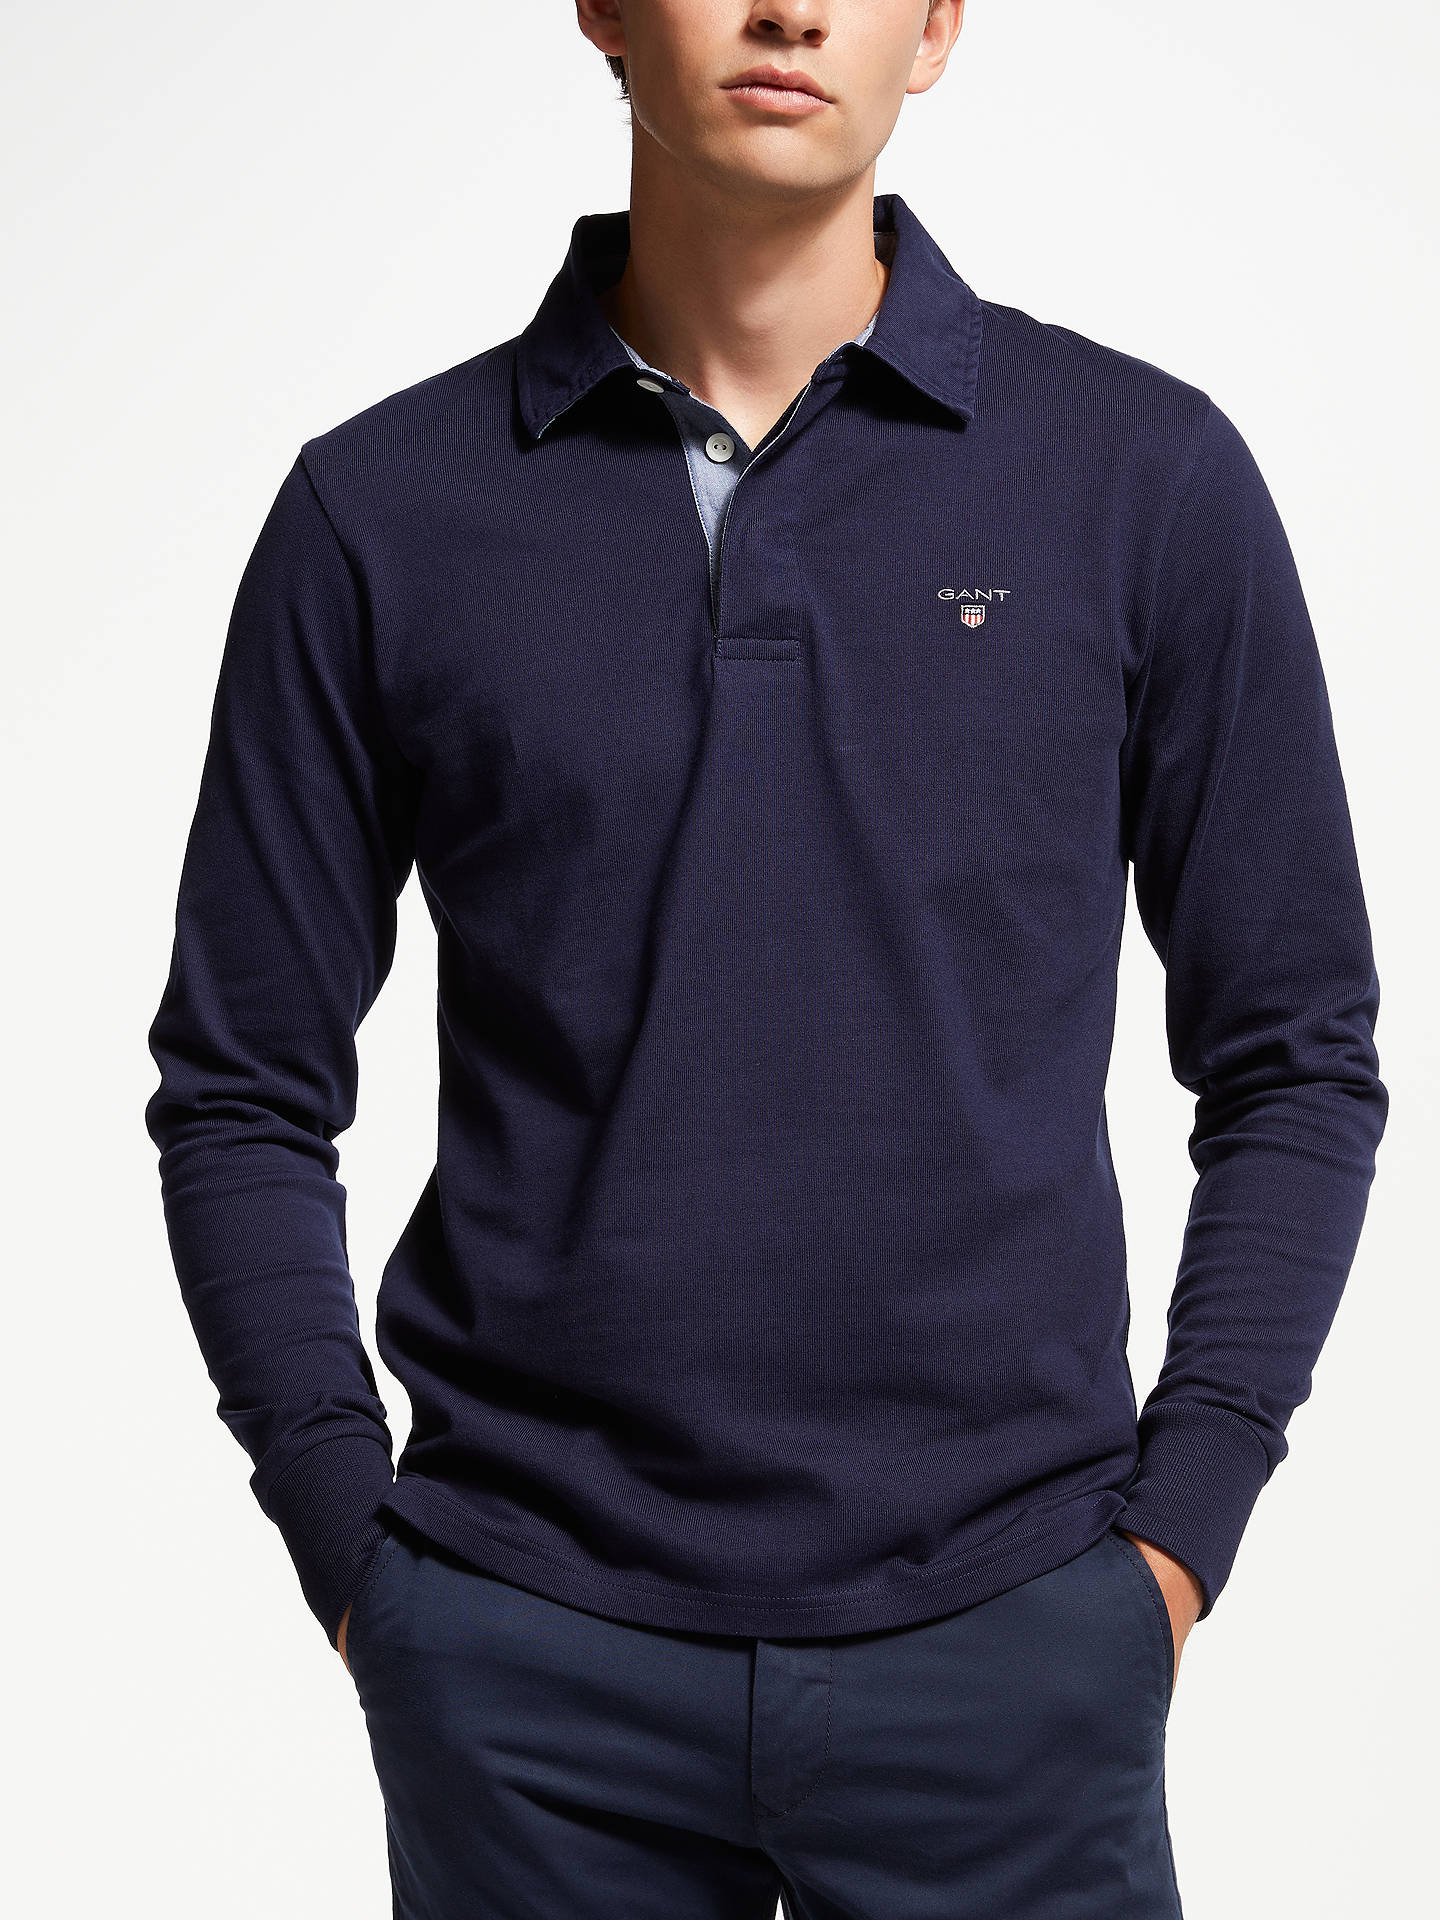 abd66e6a082 Buy GANT Rugger Long Sleeve Rugby Shirt, Navy, S Online at johnlewis.com ...